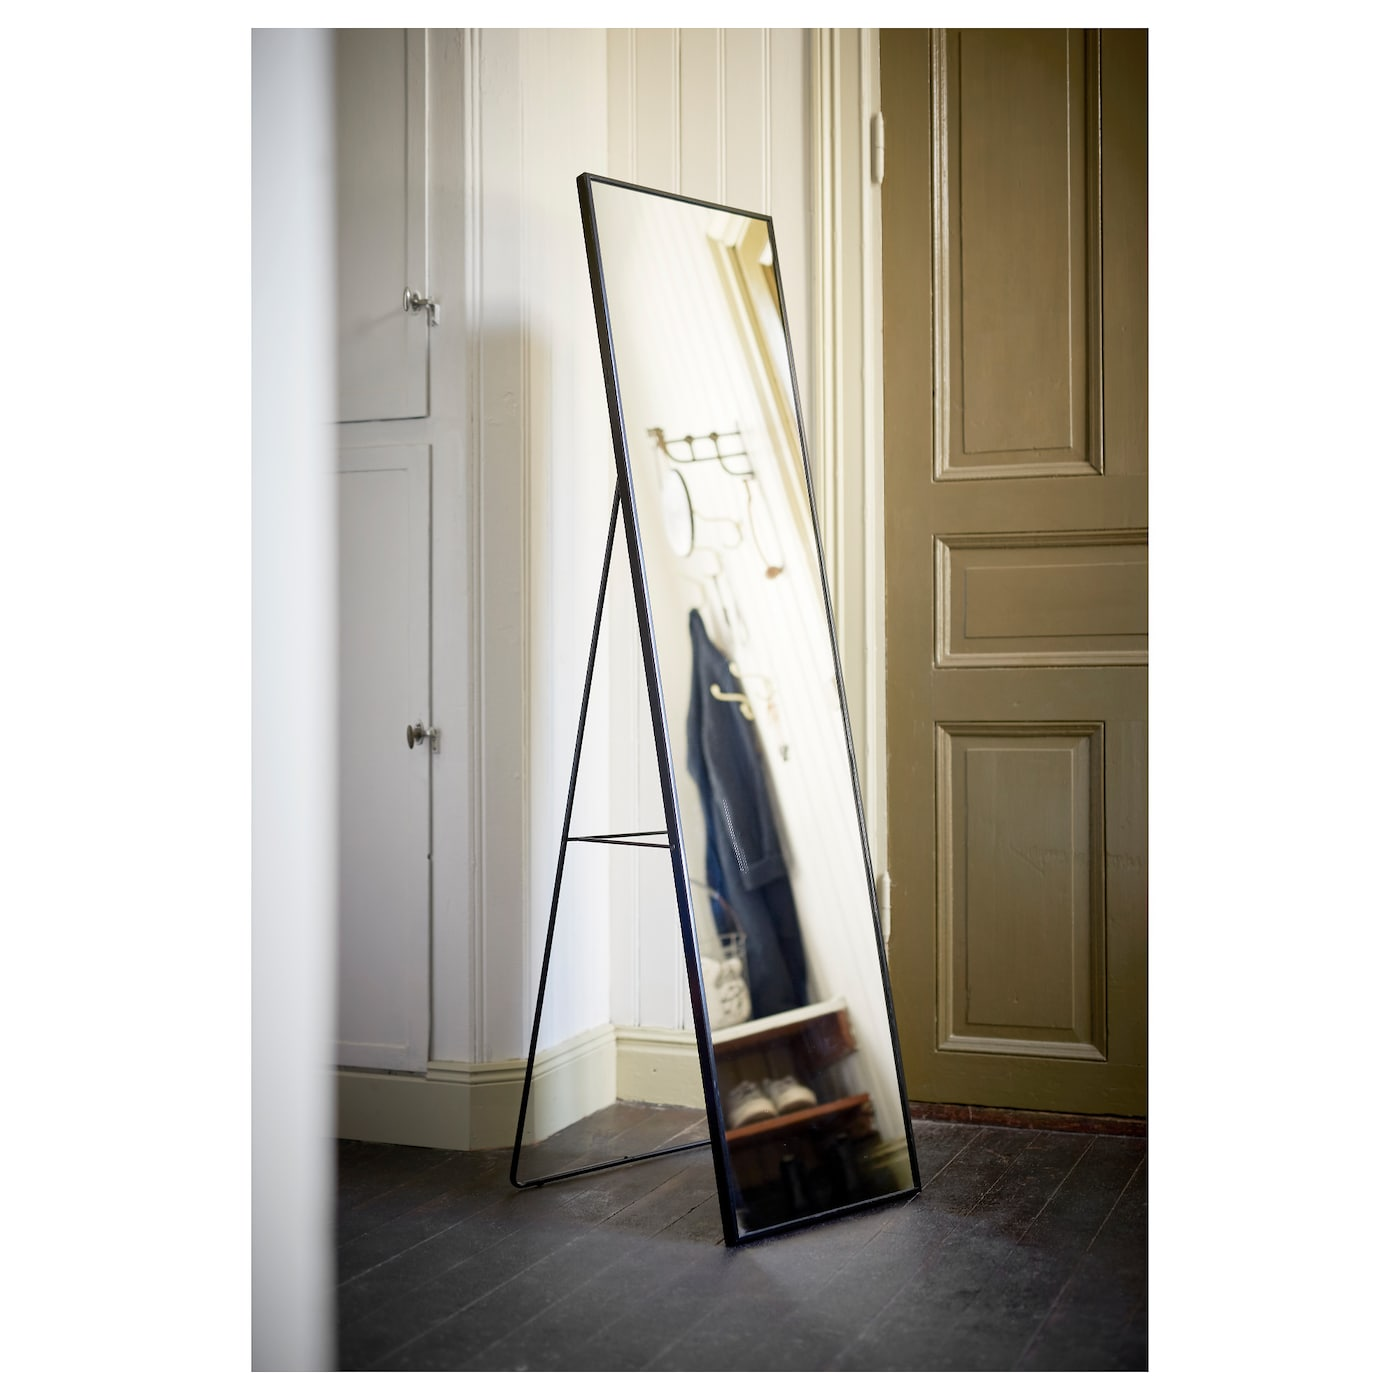 Ikea Karmsund Standing Mirror You Can Place The On Floor Or Hang It